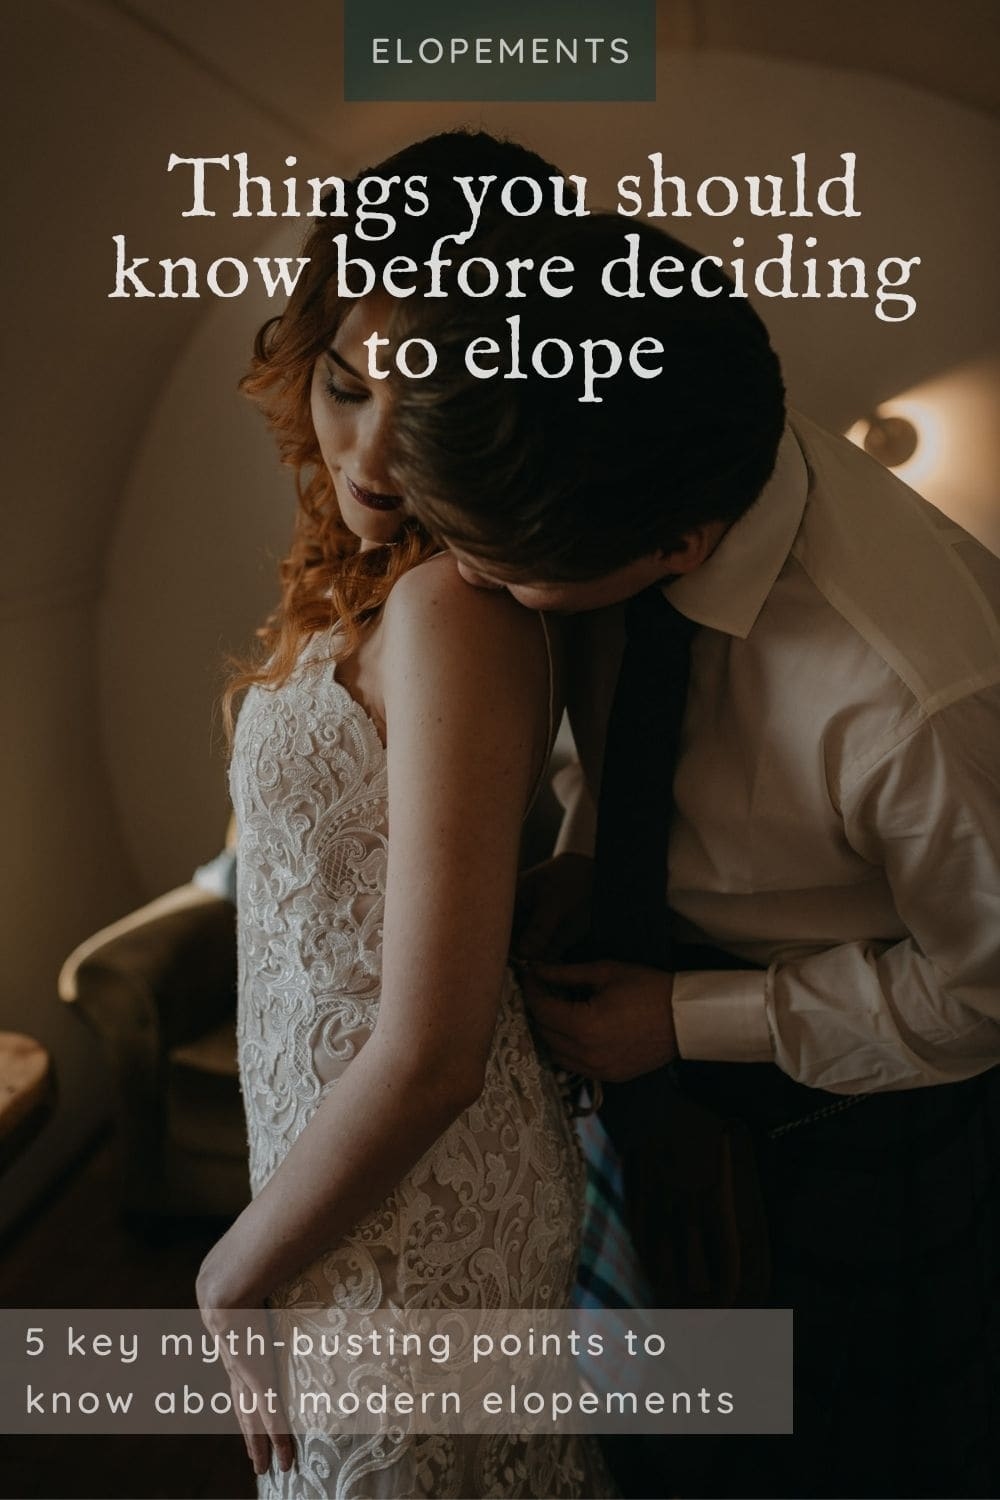 things to know before deciding to elope